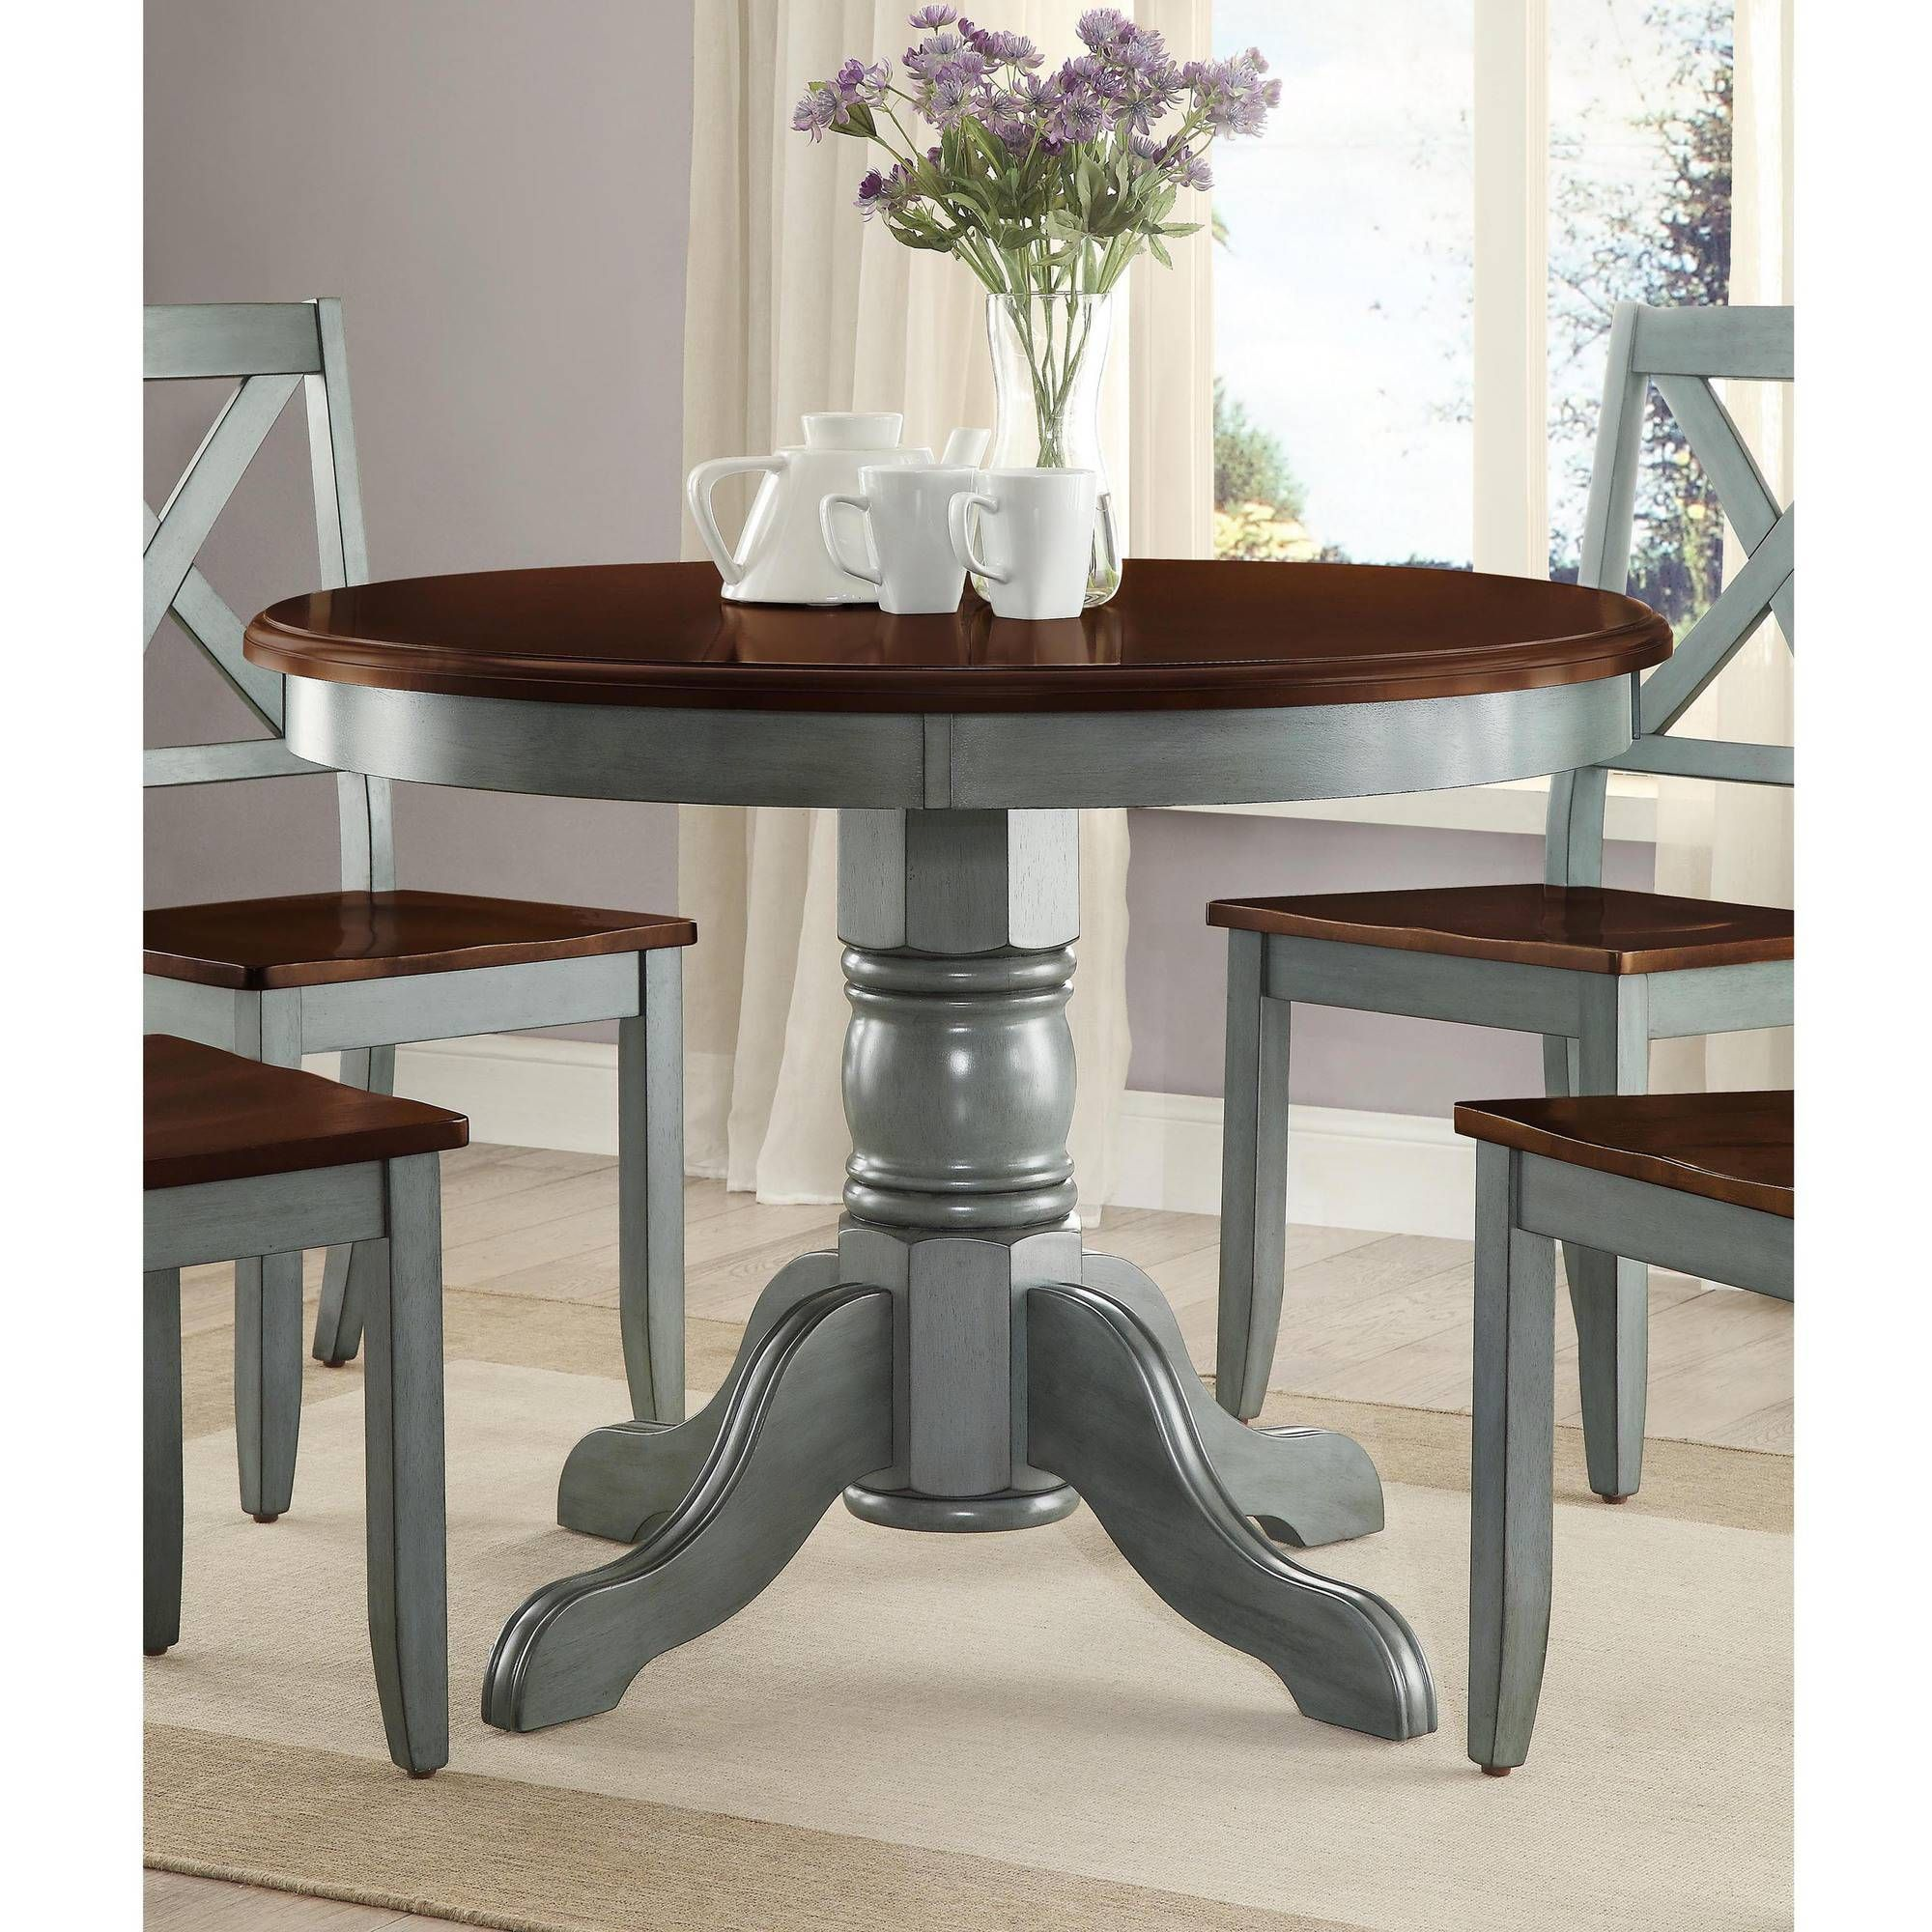 Cheap Dining Table Sets Under 200